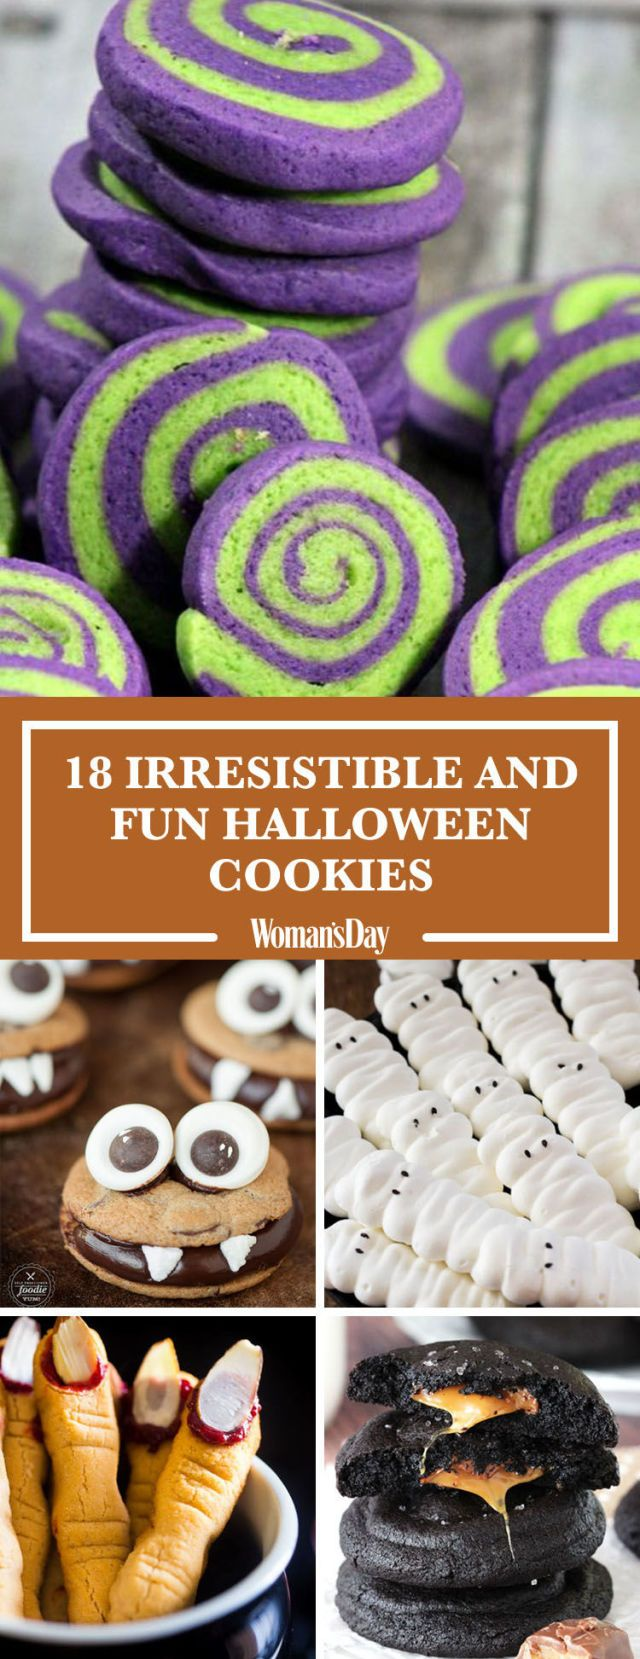 40 Halloween Cookies That Are So Easy to Make It's Scary -   23 halloween cookie recipes ideas